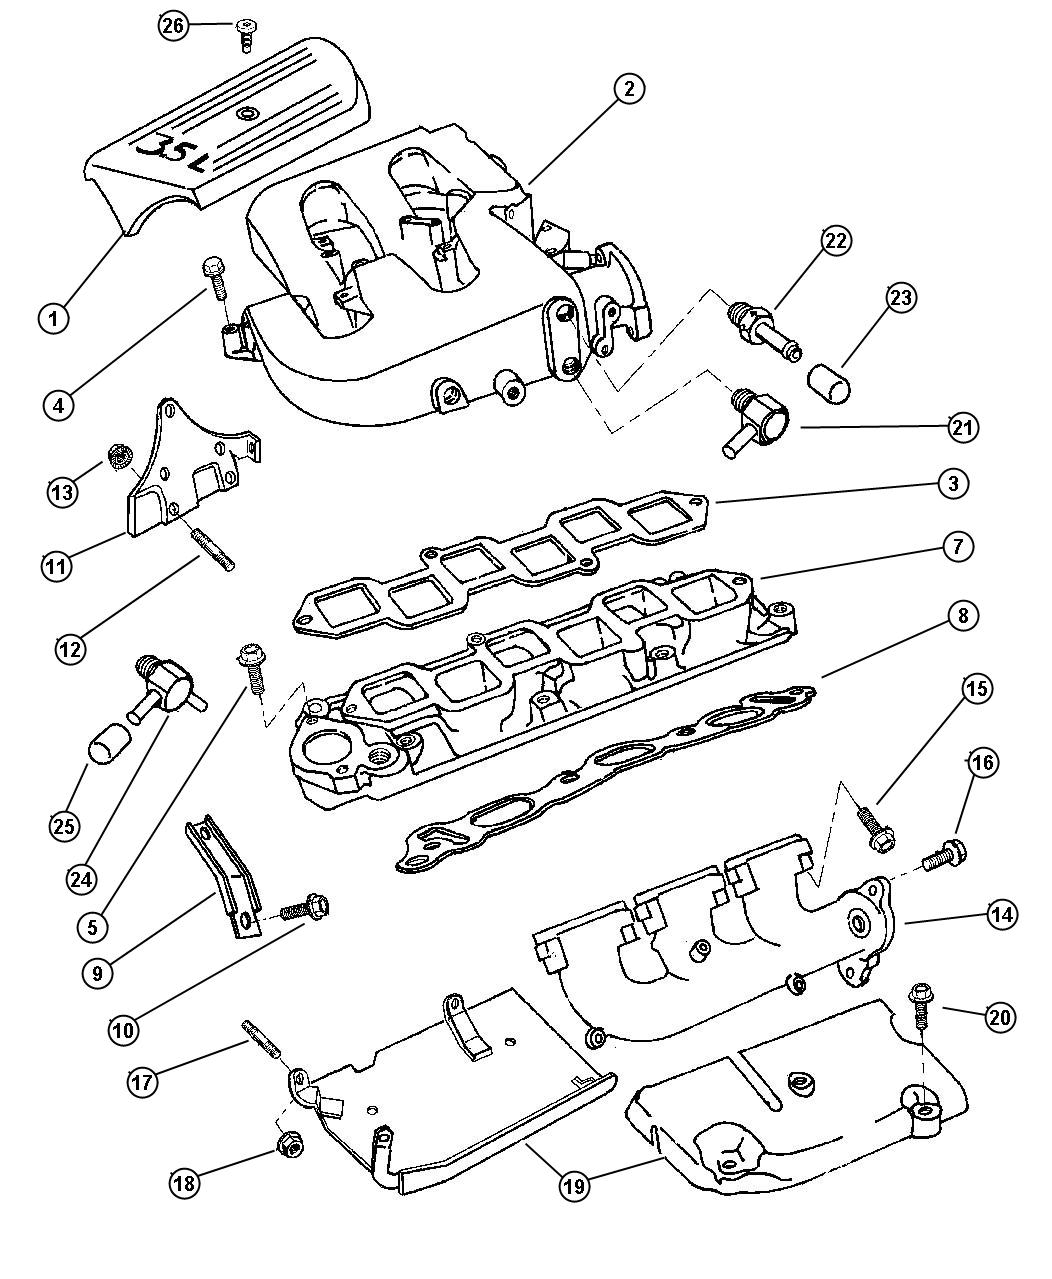 1997 Chrysler Lhs Manifold, Intake And Exhaust 3.5L Engine.